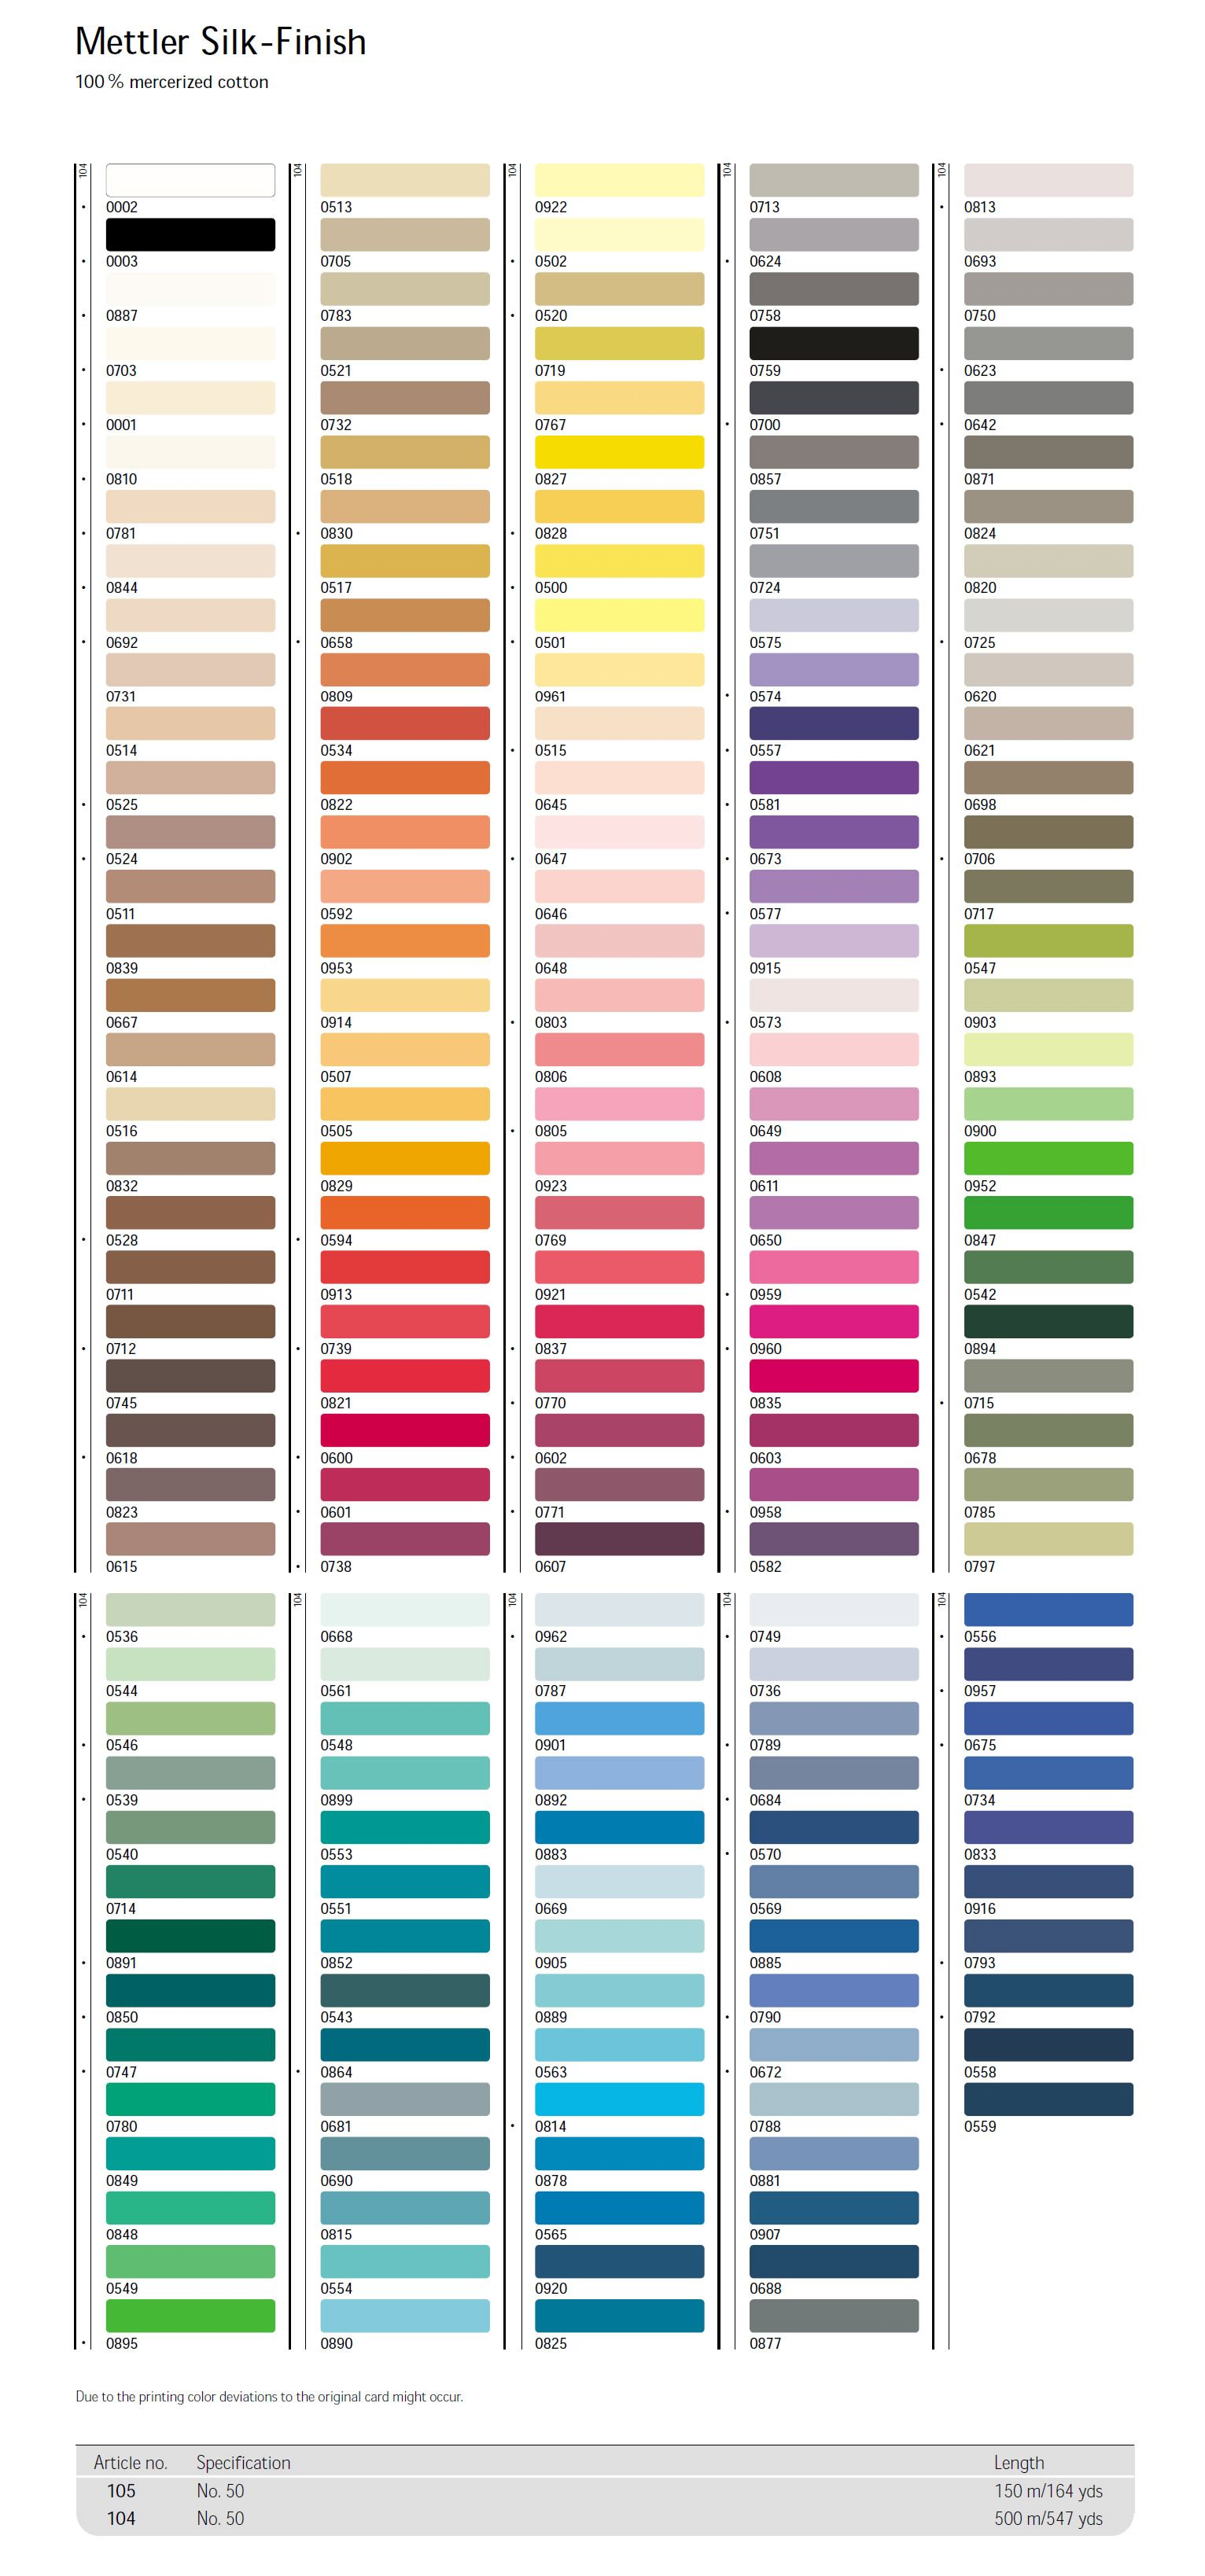 Gutermann thread color chart choice image free any chart examples madeira thread color chart pdf image collections free any chart mettler thread color chart images free nvjuhfo Images